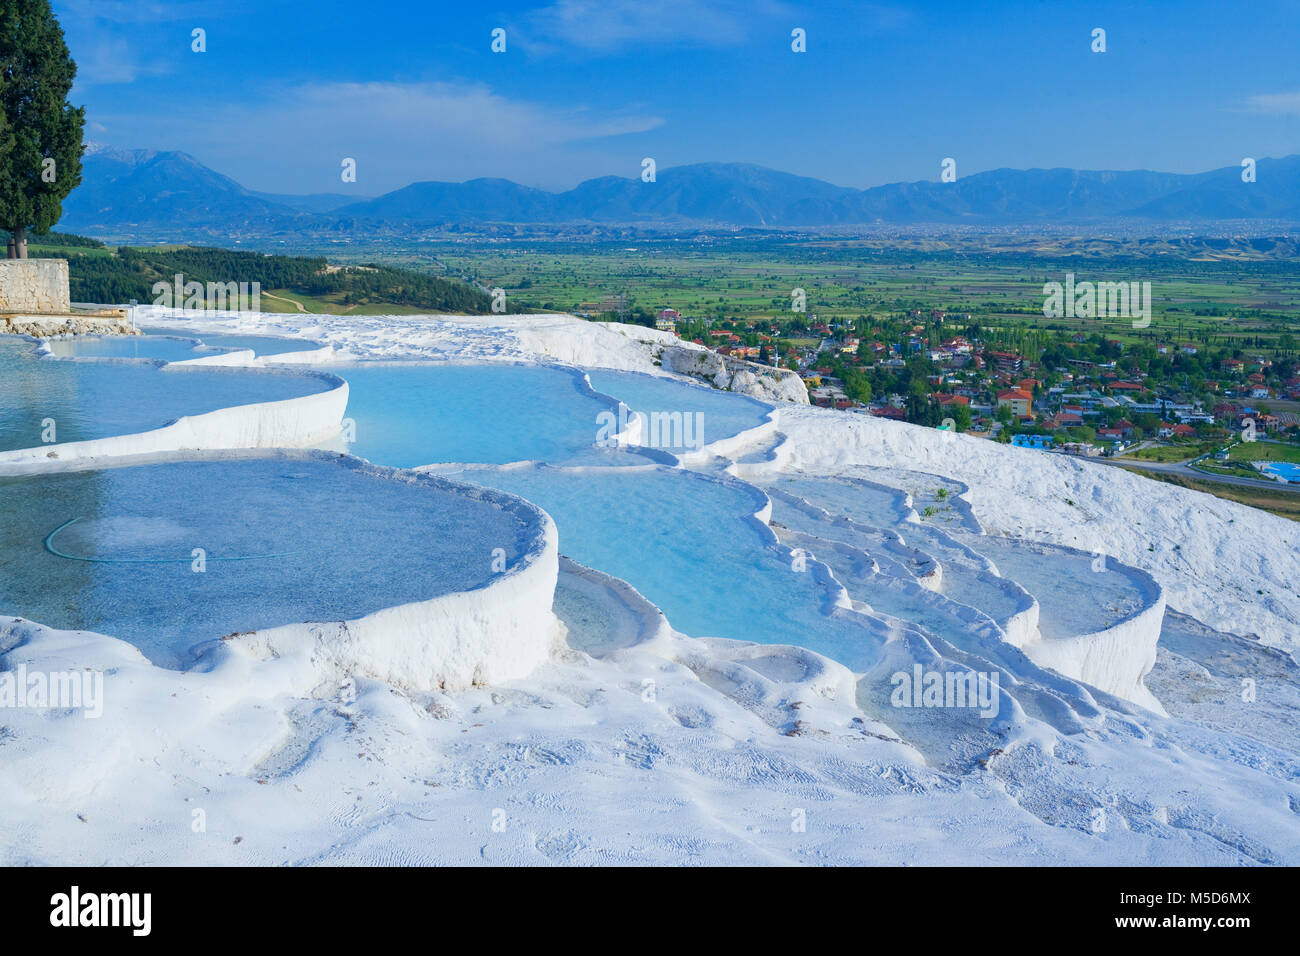 Terraced travertine thermal pools, Pamukkale, Anatolia, Turkey - Stock Image